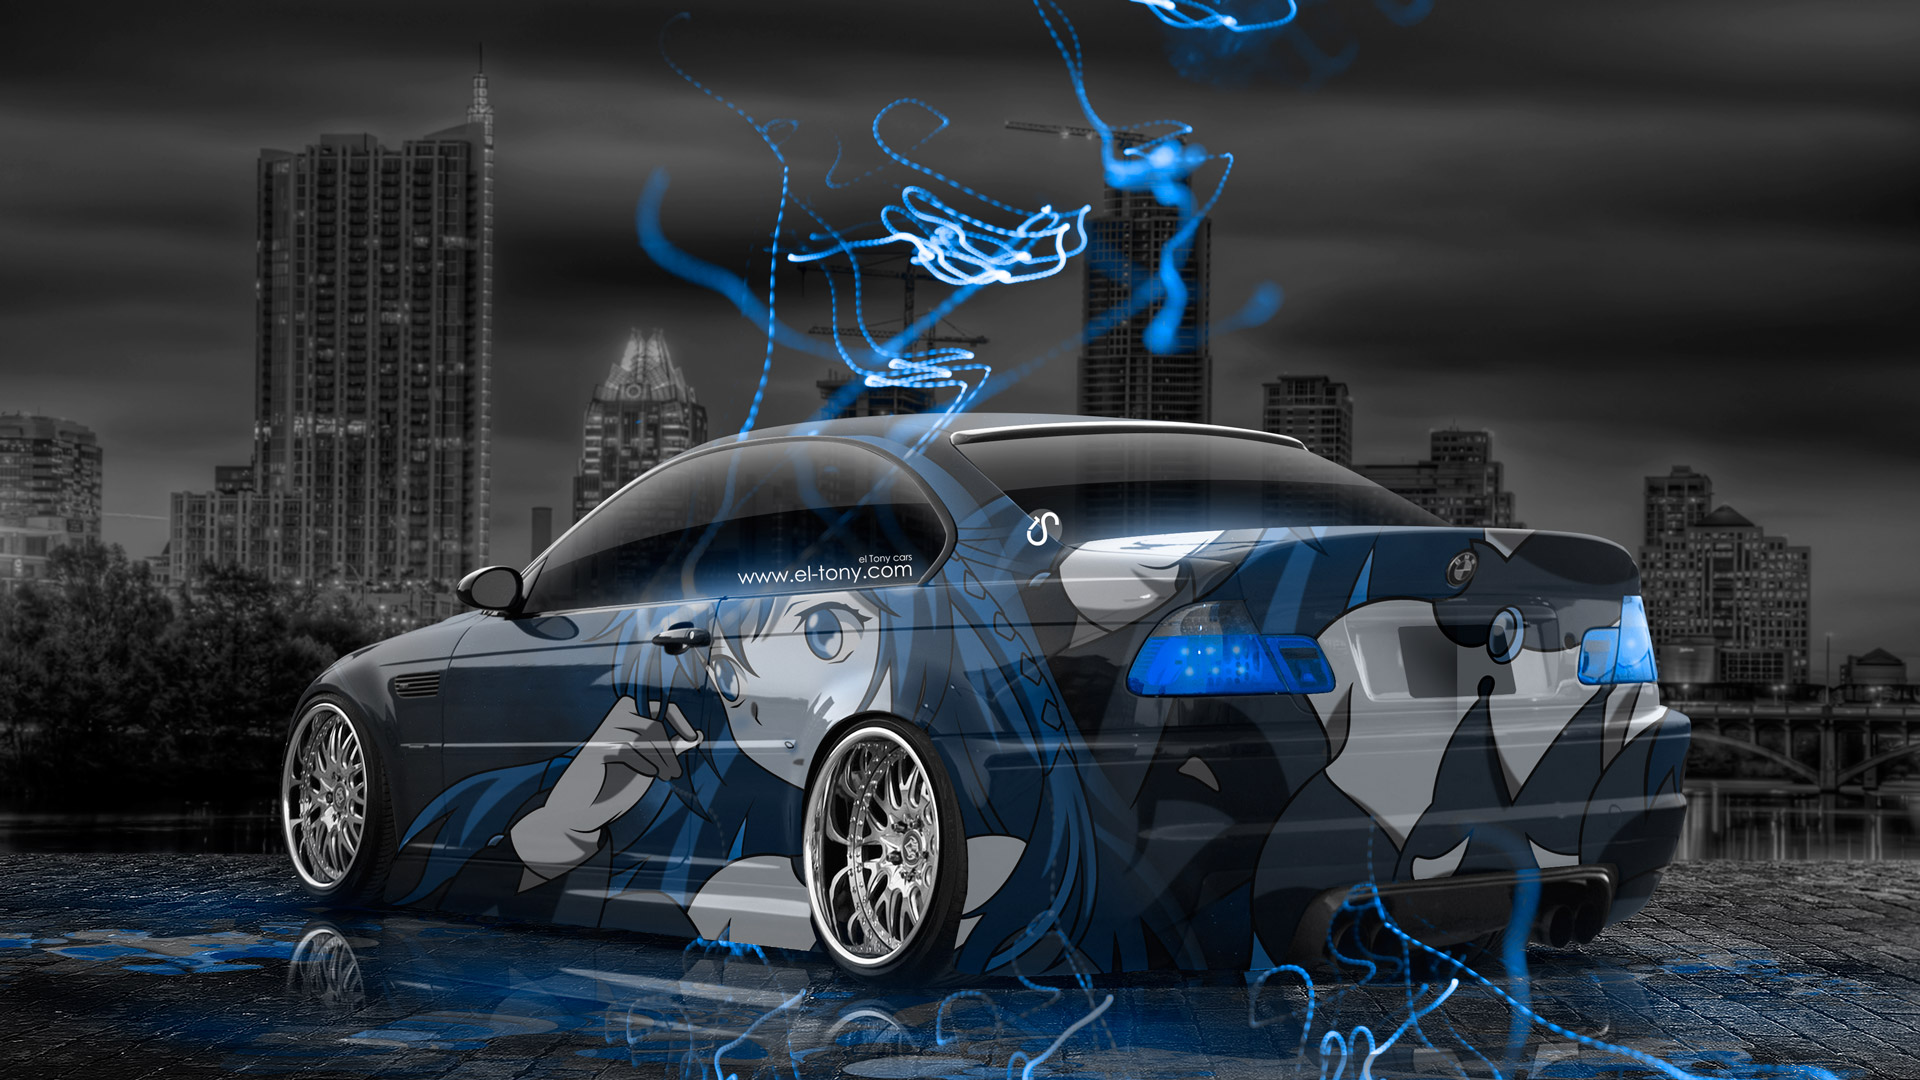 BMW M3 E46 Anime Girl Aerography City Car 2014 Photoshop Blue Neon ...